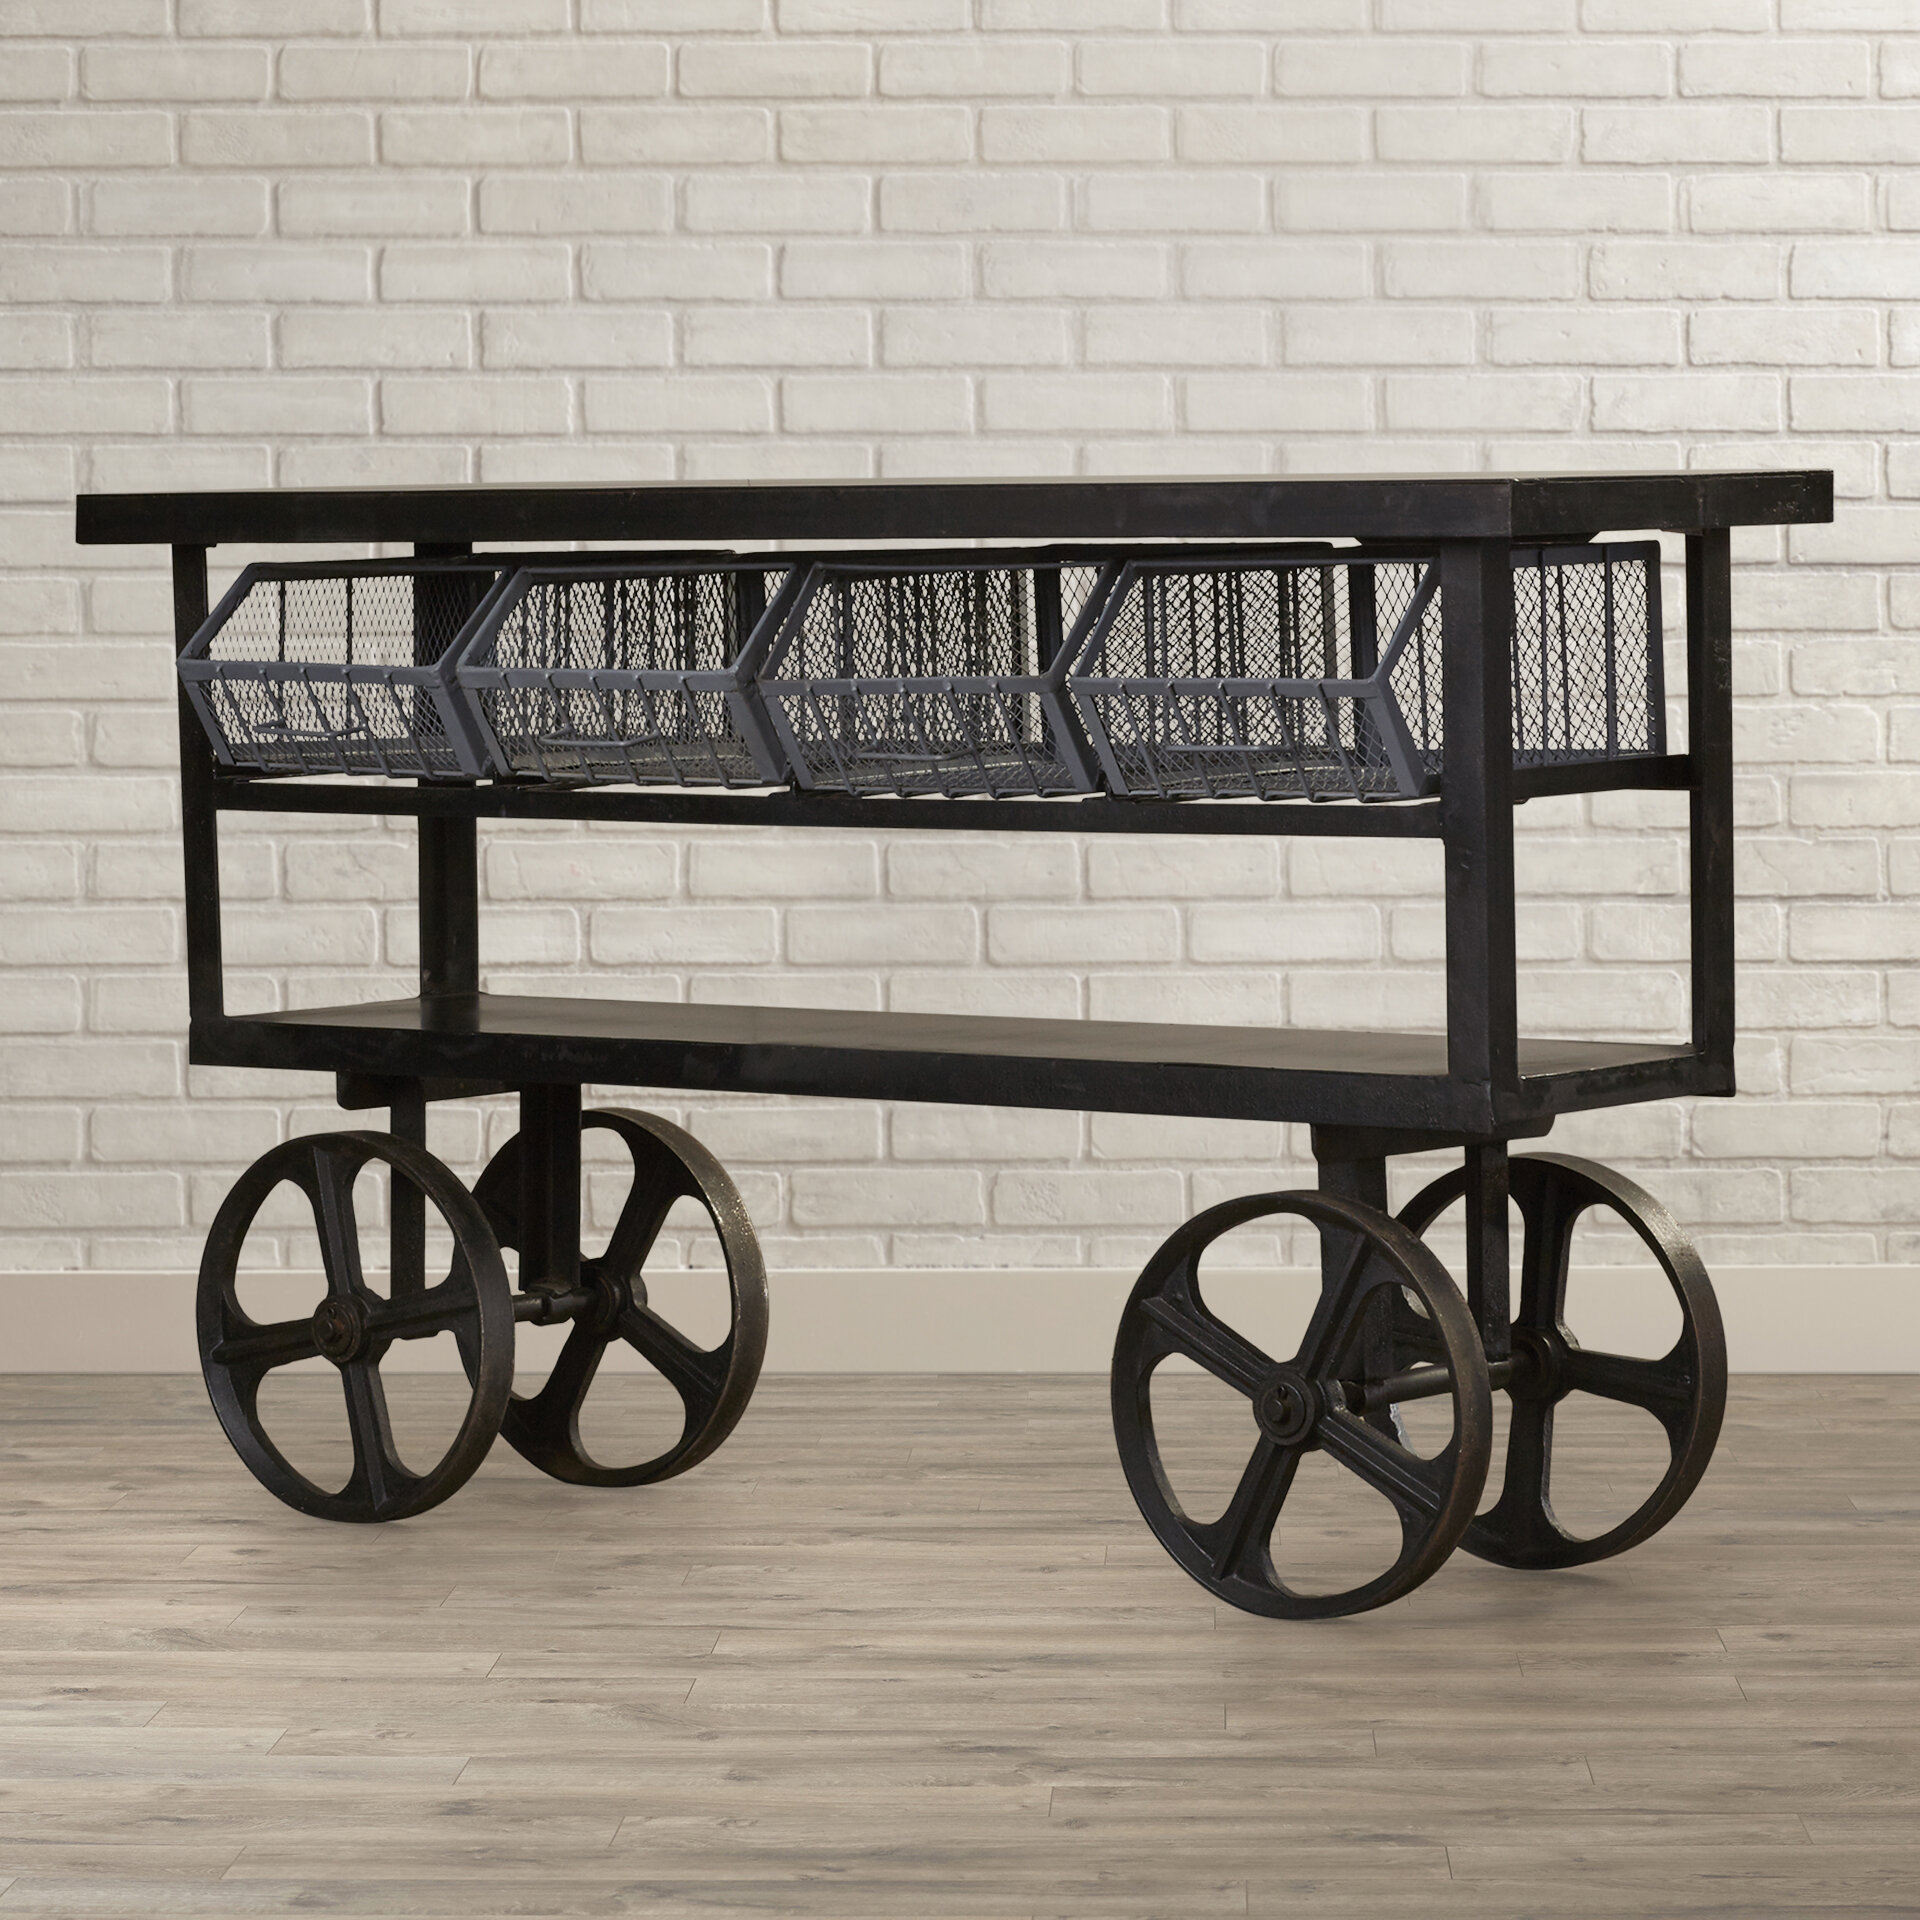 Loftdesigns Kuchenwagen Industrial Chic Maricopa Wayfair De